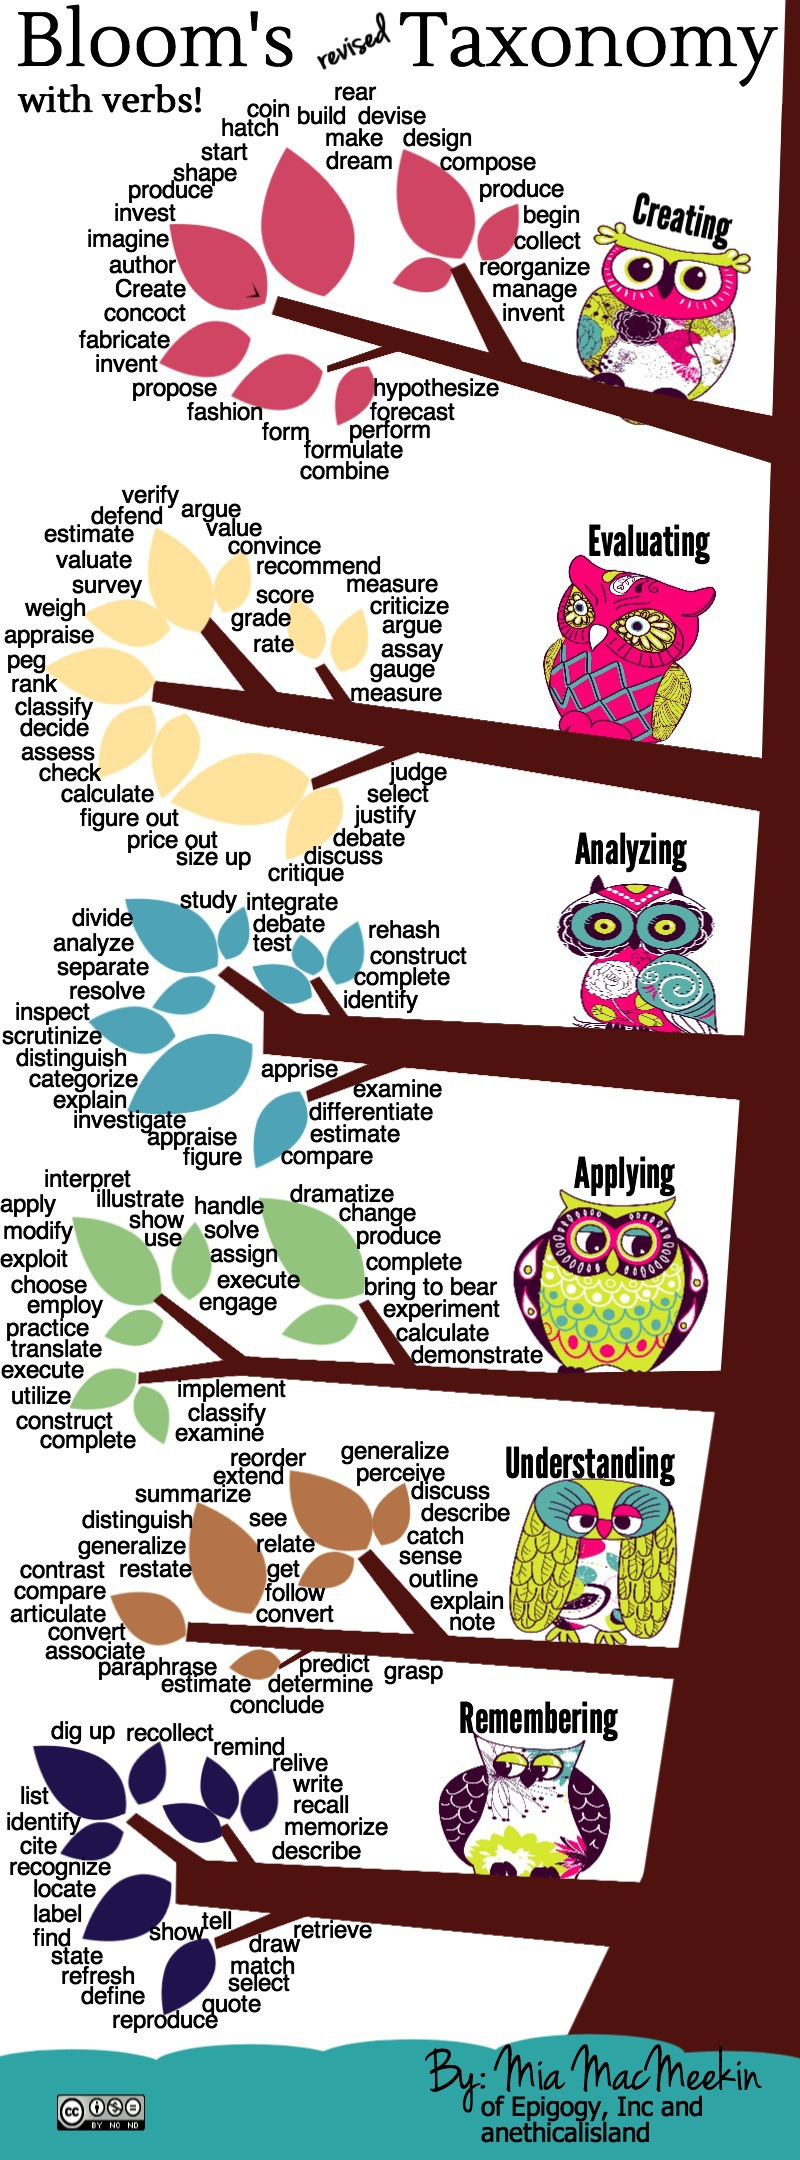 Bloom's Revised Taxonomy Action Verbs infographic